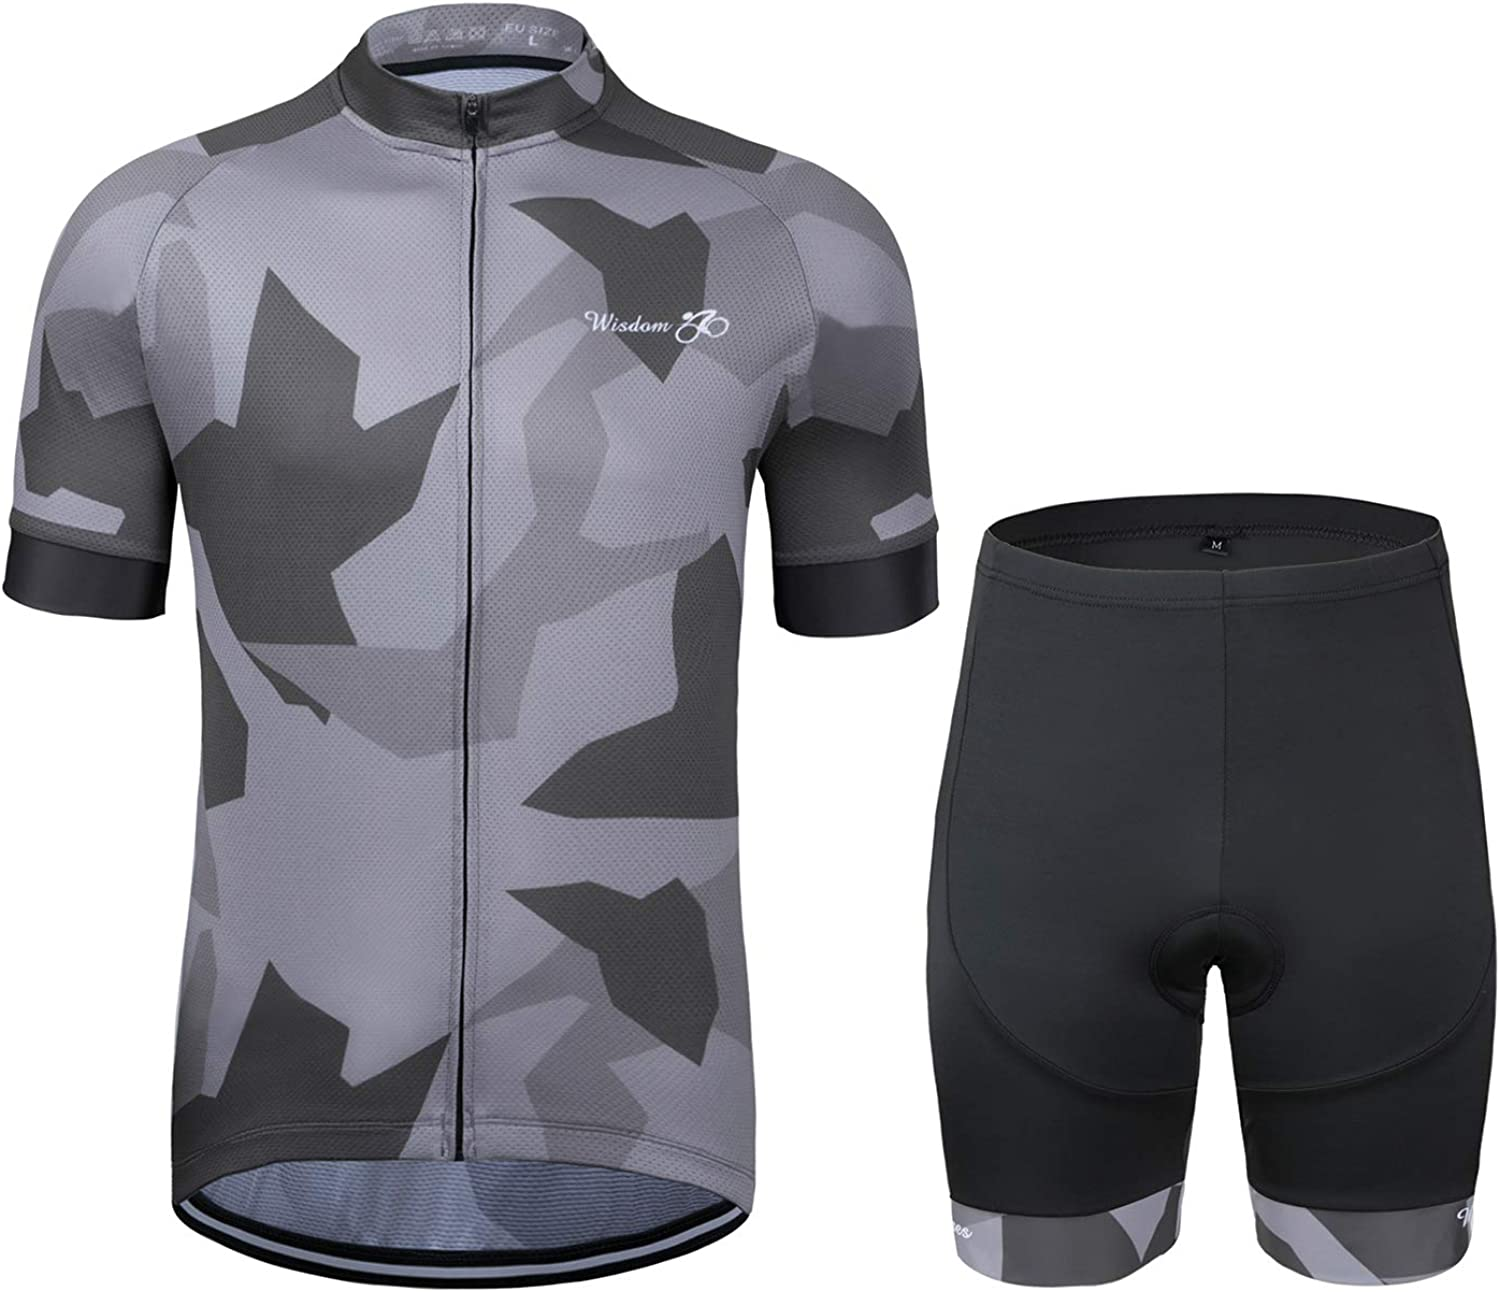 Men's Cycling Jersey Set Short Sleeve MTB Jersey Road Bike Clothing Shirts Shorts with 3D Padded Outdoor Riding Sportswear: Clothing